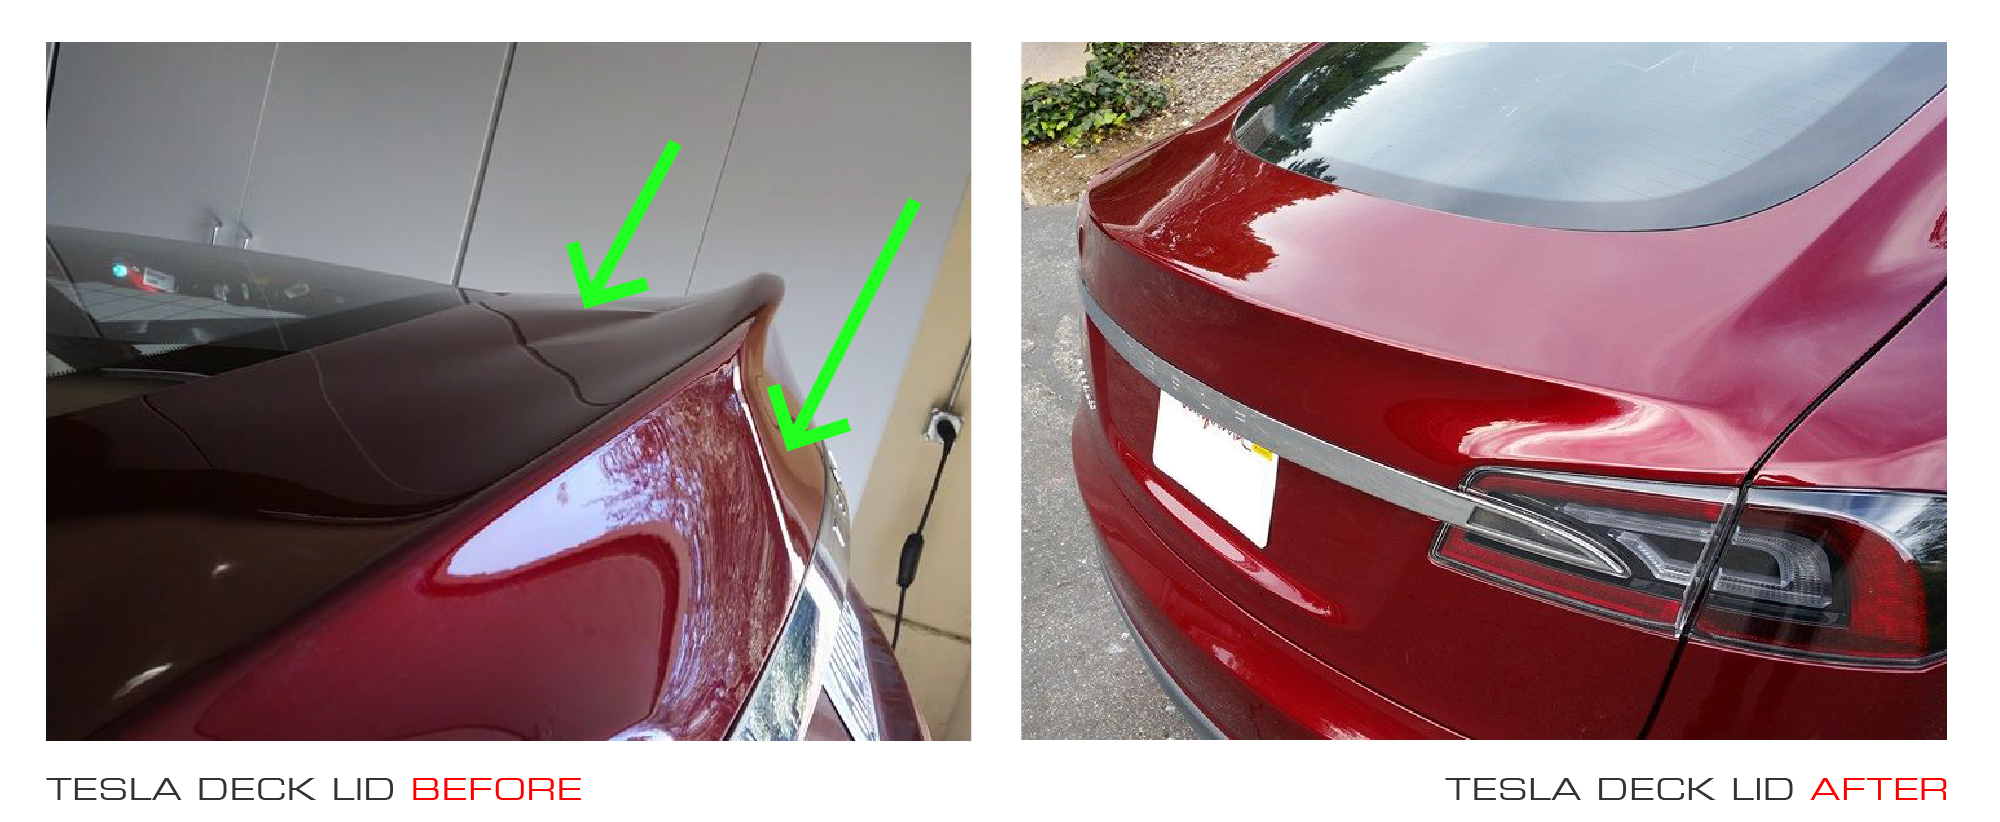 Tesla before and after